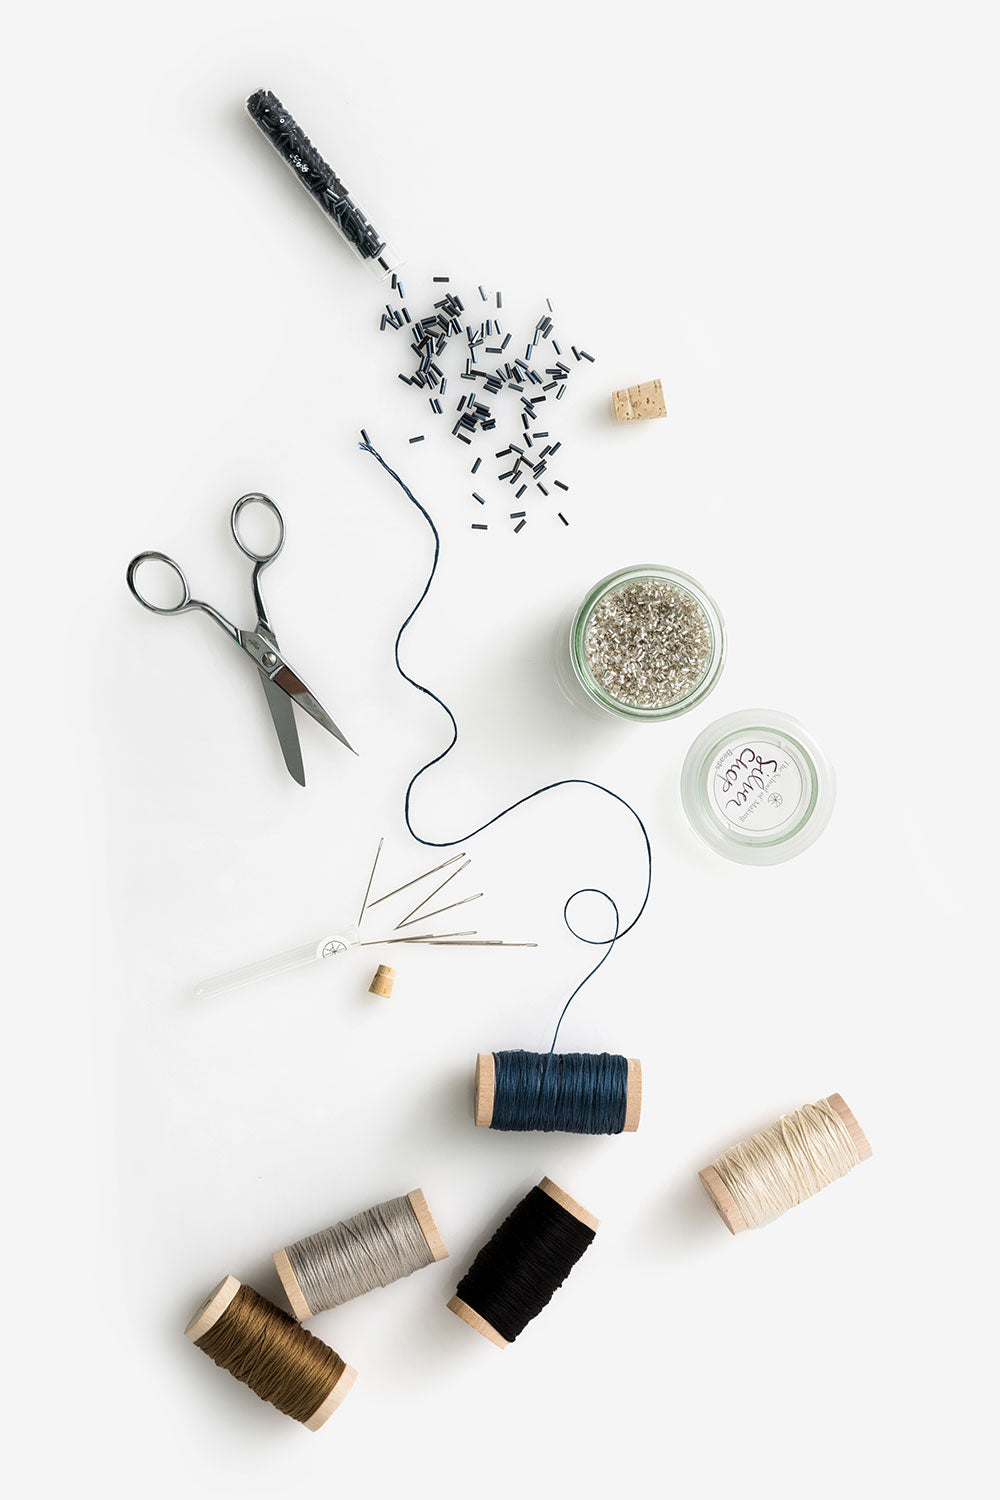 The School of Making Three Day Workshop Maker Supplies for Embellishing Handmade Clothing